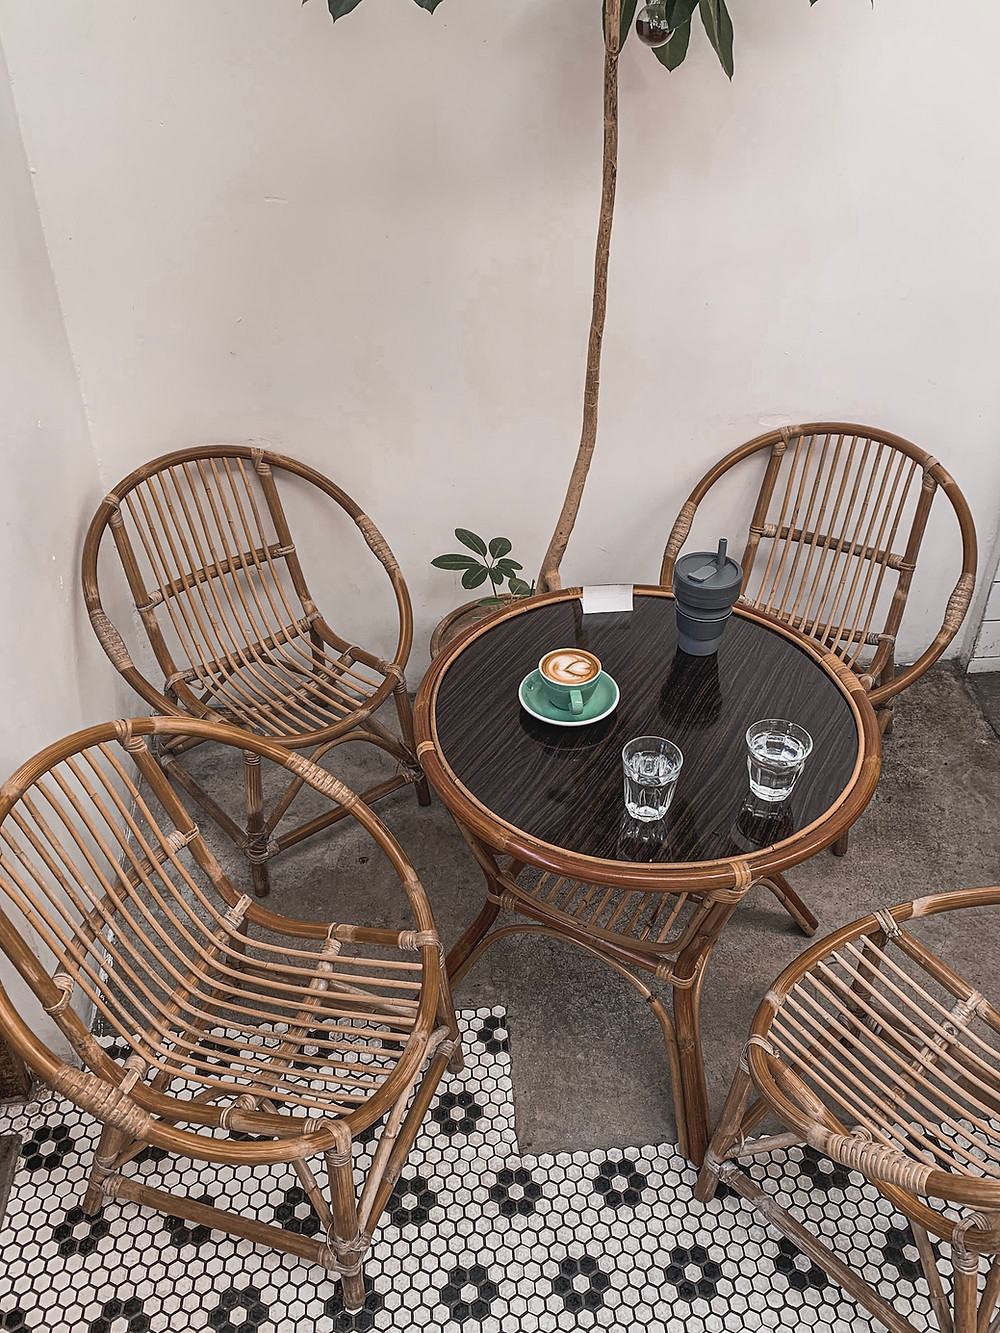 Norm Penang interiors: traditional rattan furniture, patterned Chinese tiles, RollingBear Travels.